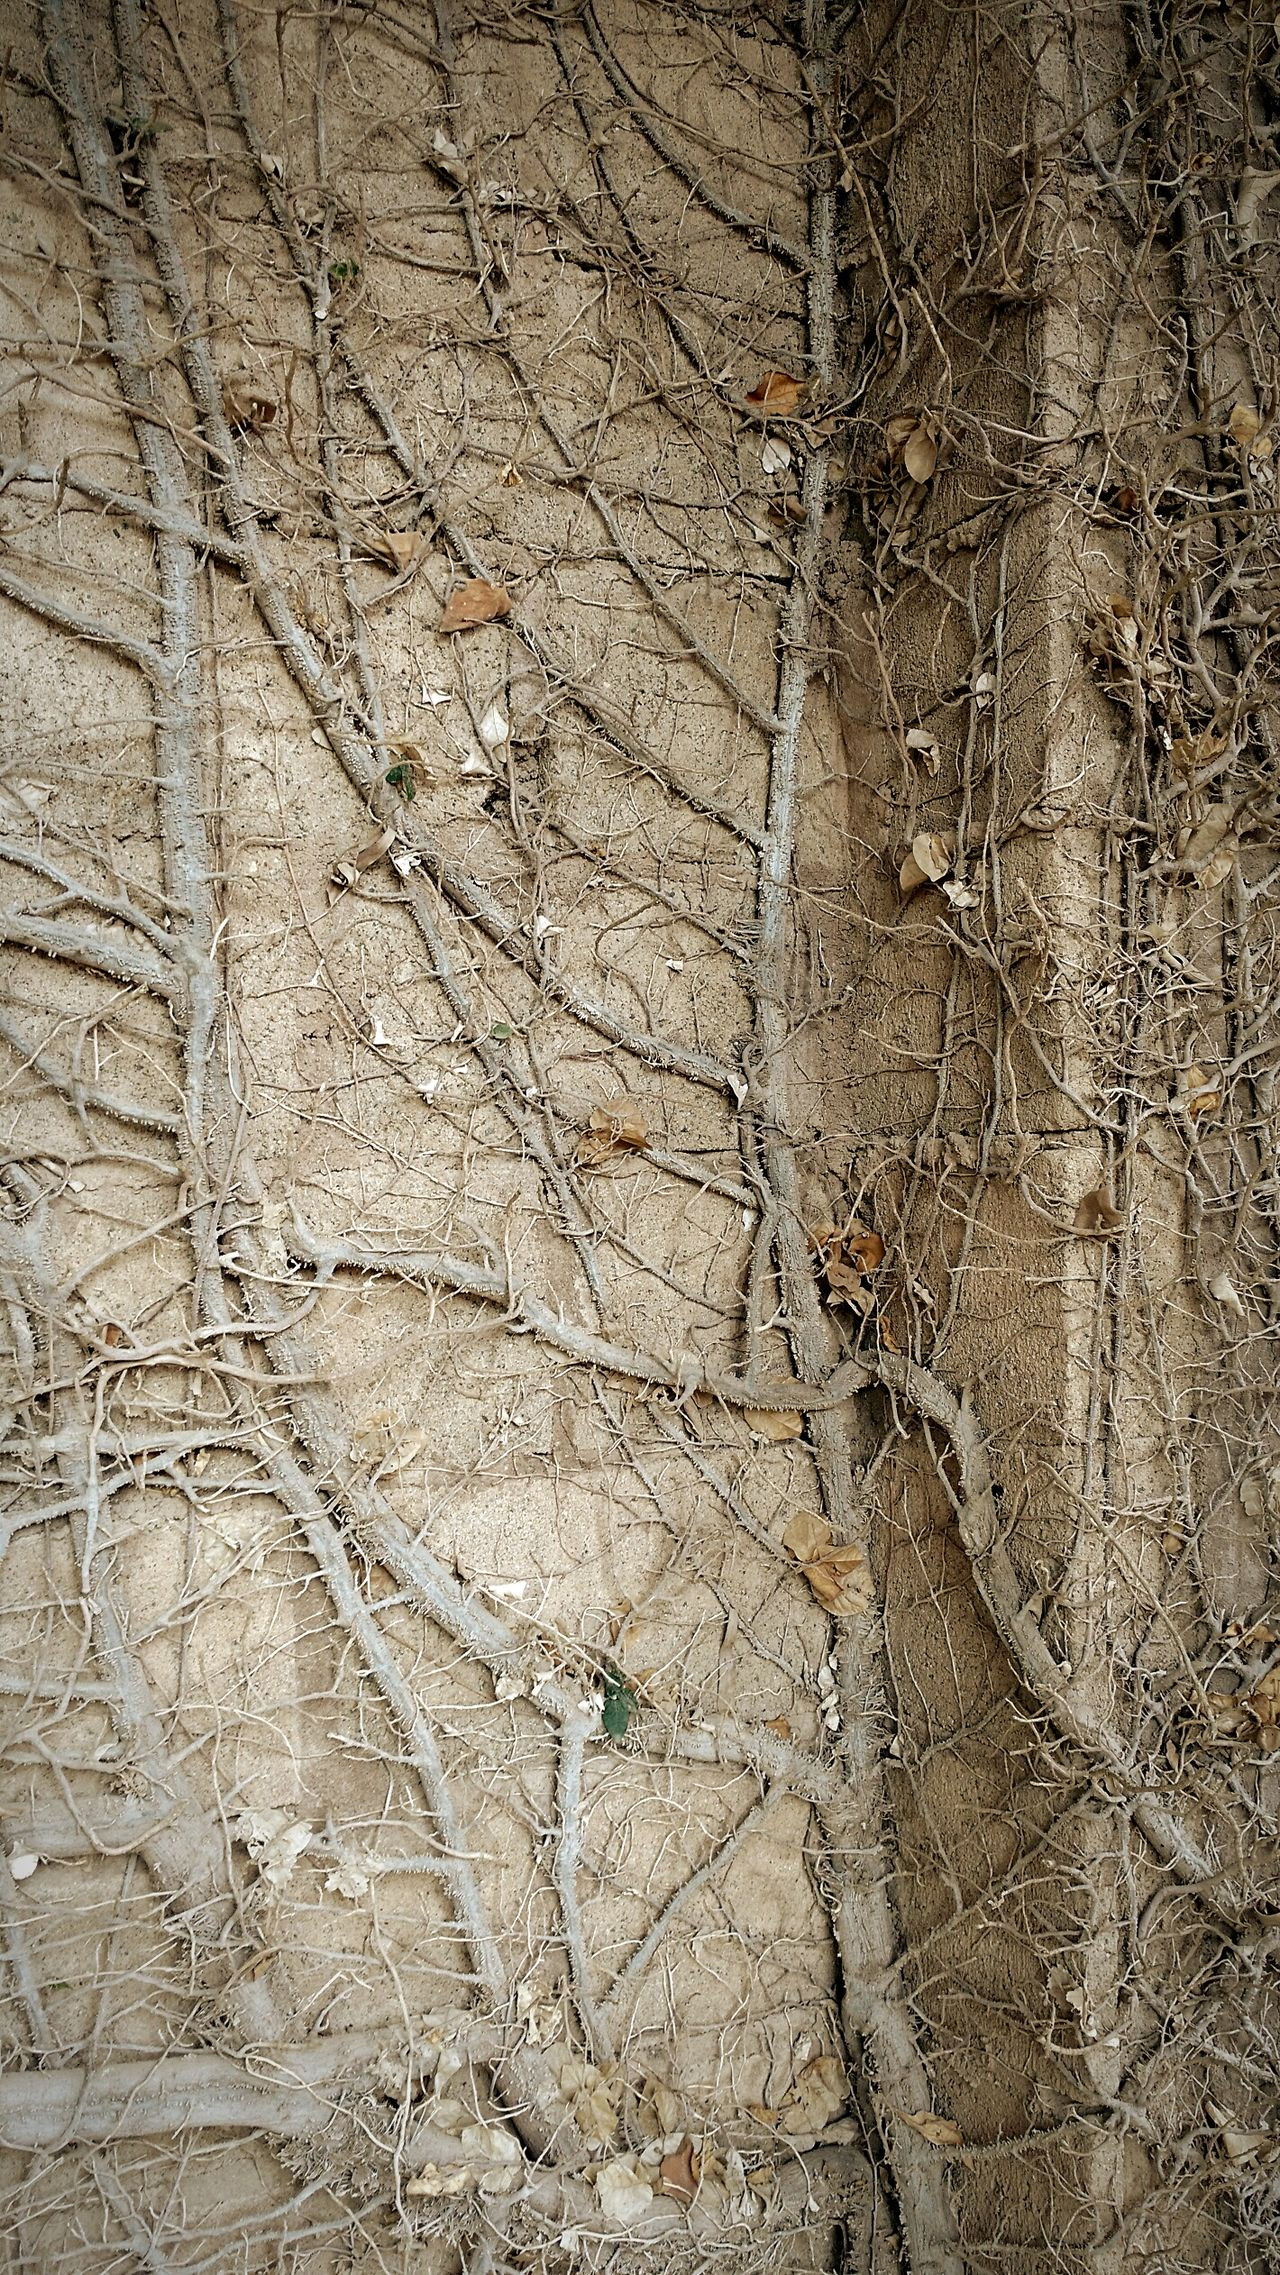 Dead climbing vine. Close-up Day Nature Outdoors No People Dead Plant Dead Nature Dead Vines Abandoned Abandoned Places Decay Decay And Dereliction Beauty Of Decay Broken Broken Beauty Forgotten Forgotten Places  EyeEmBestPics EyeEm Gallery